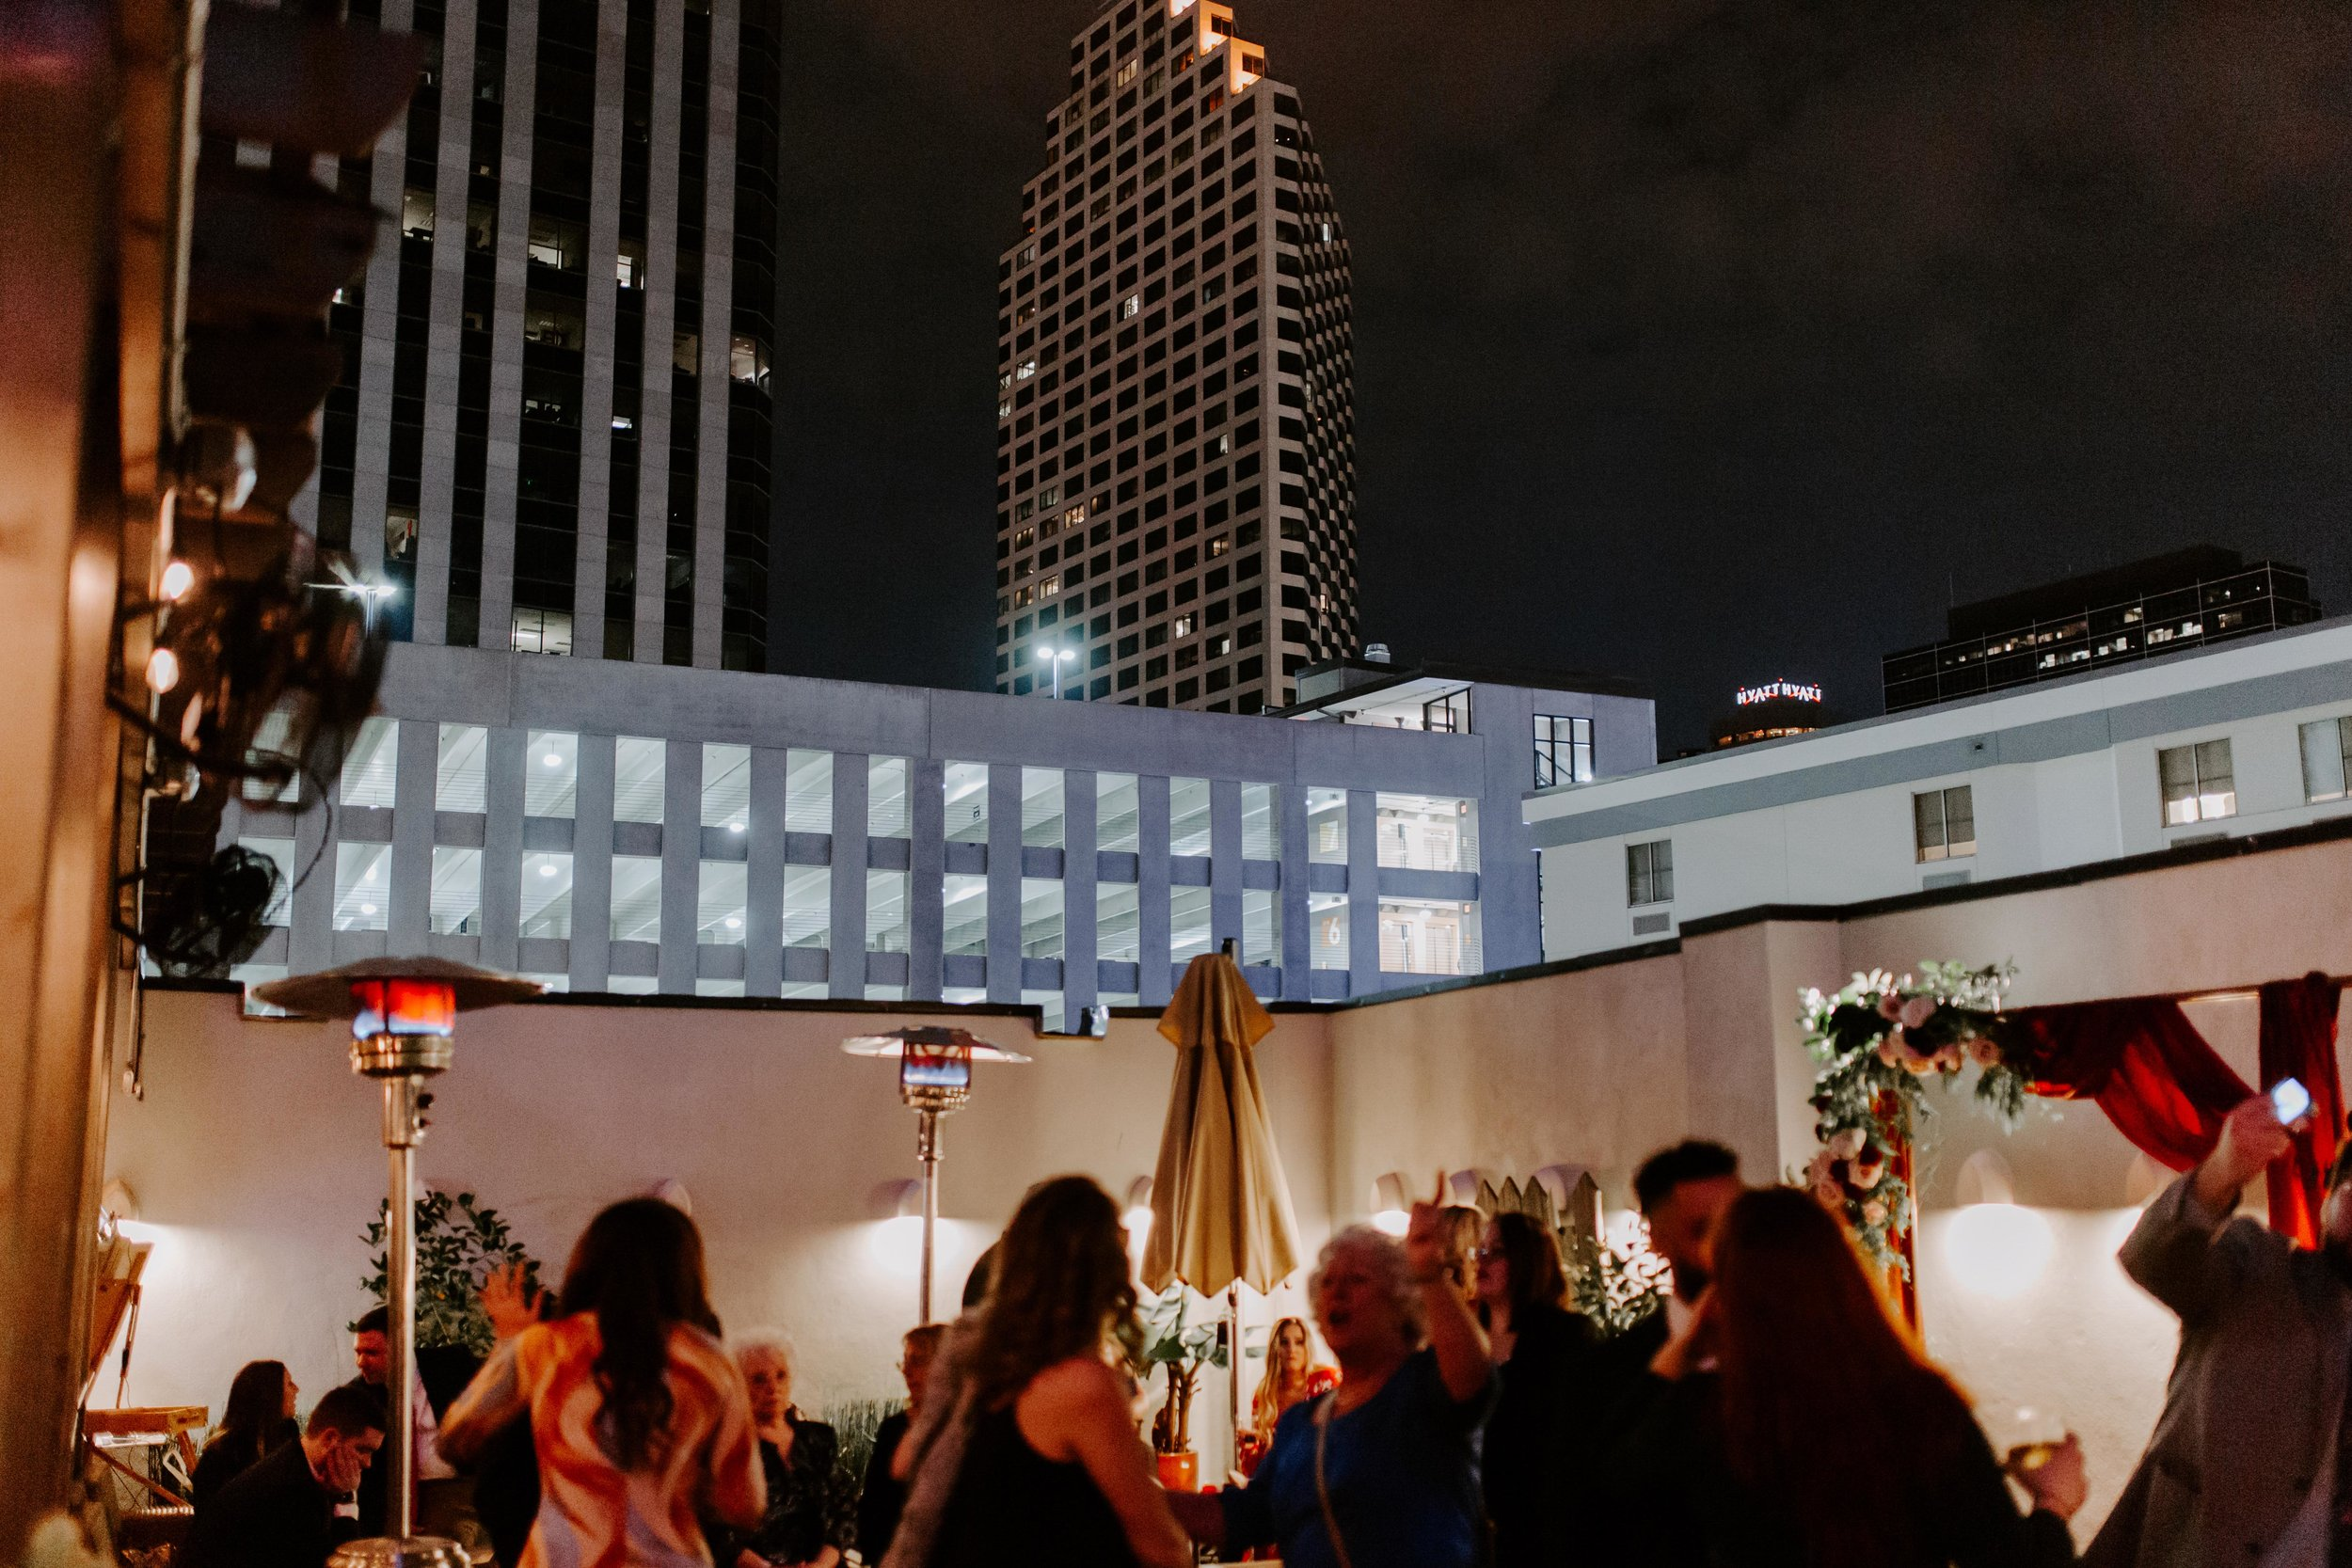 Catahoula Hotel Rooftop Wedding Reception New Orleans Wedding Photographer Ashley Biltz Photography44.jpg